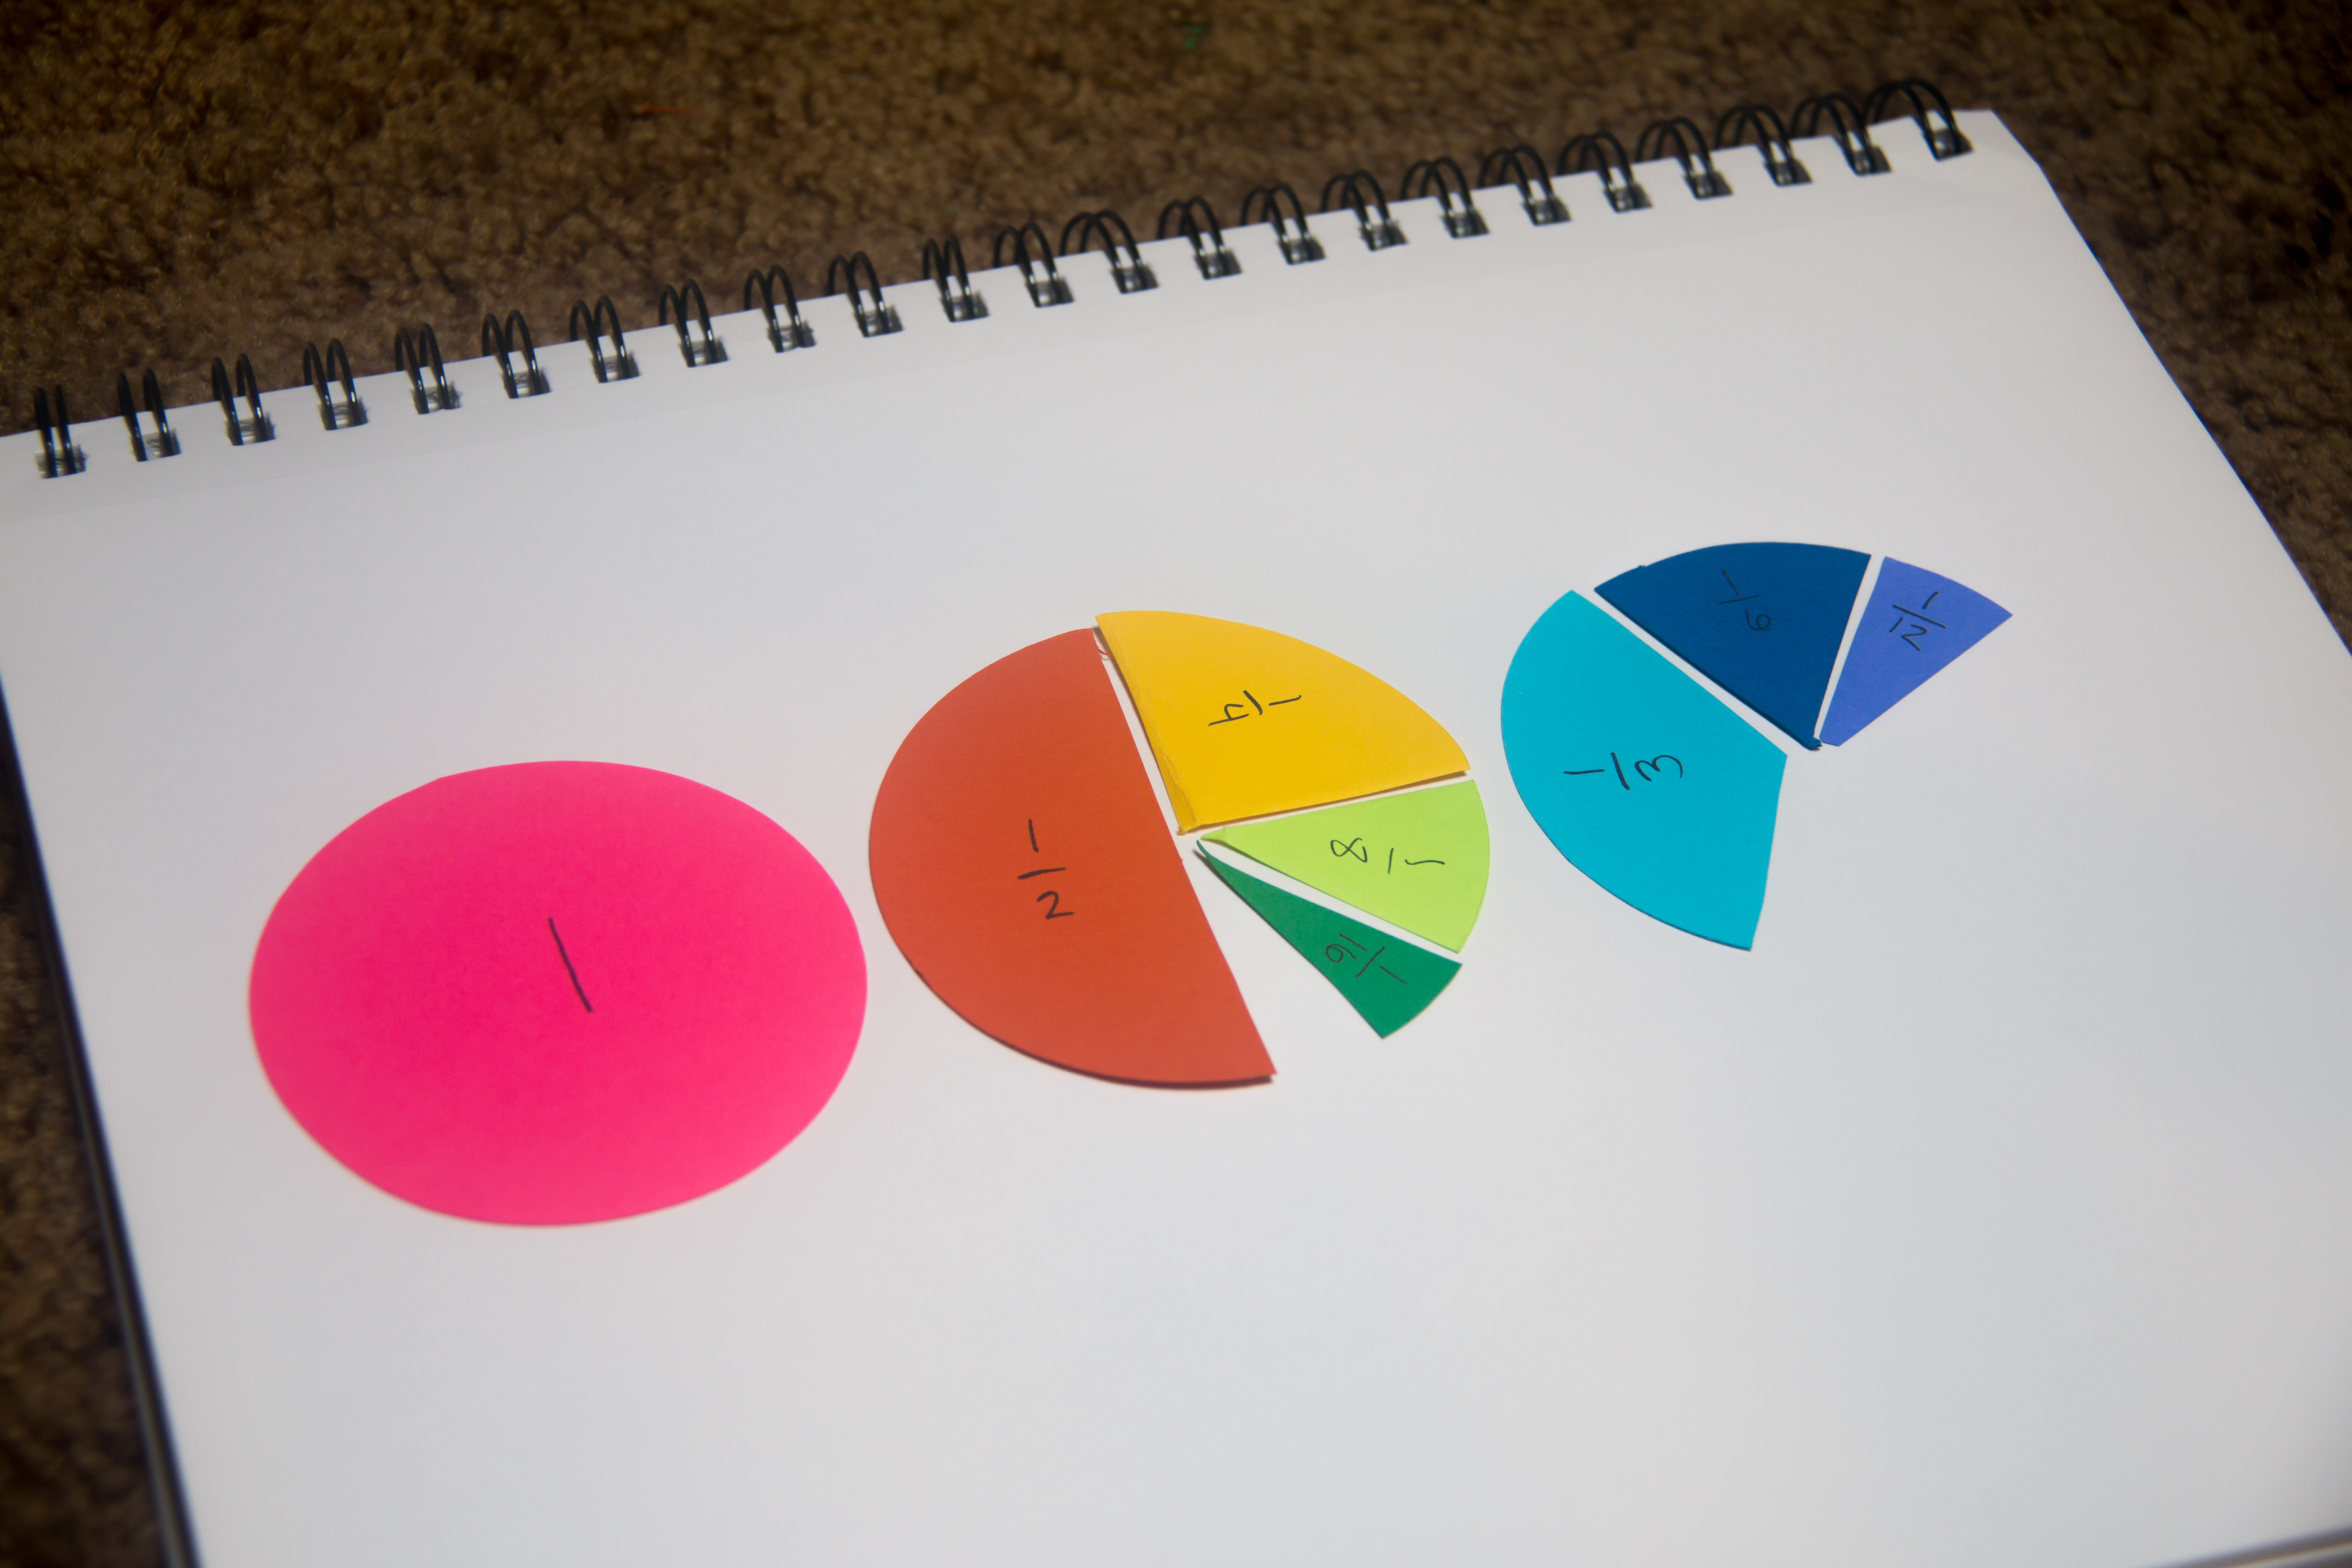 fractions cut from circles finding halves of half, forth, eighth, third, and sixths.